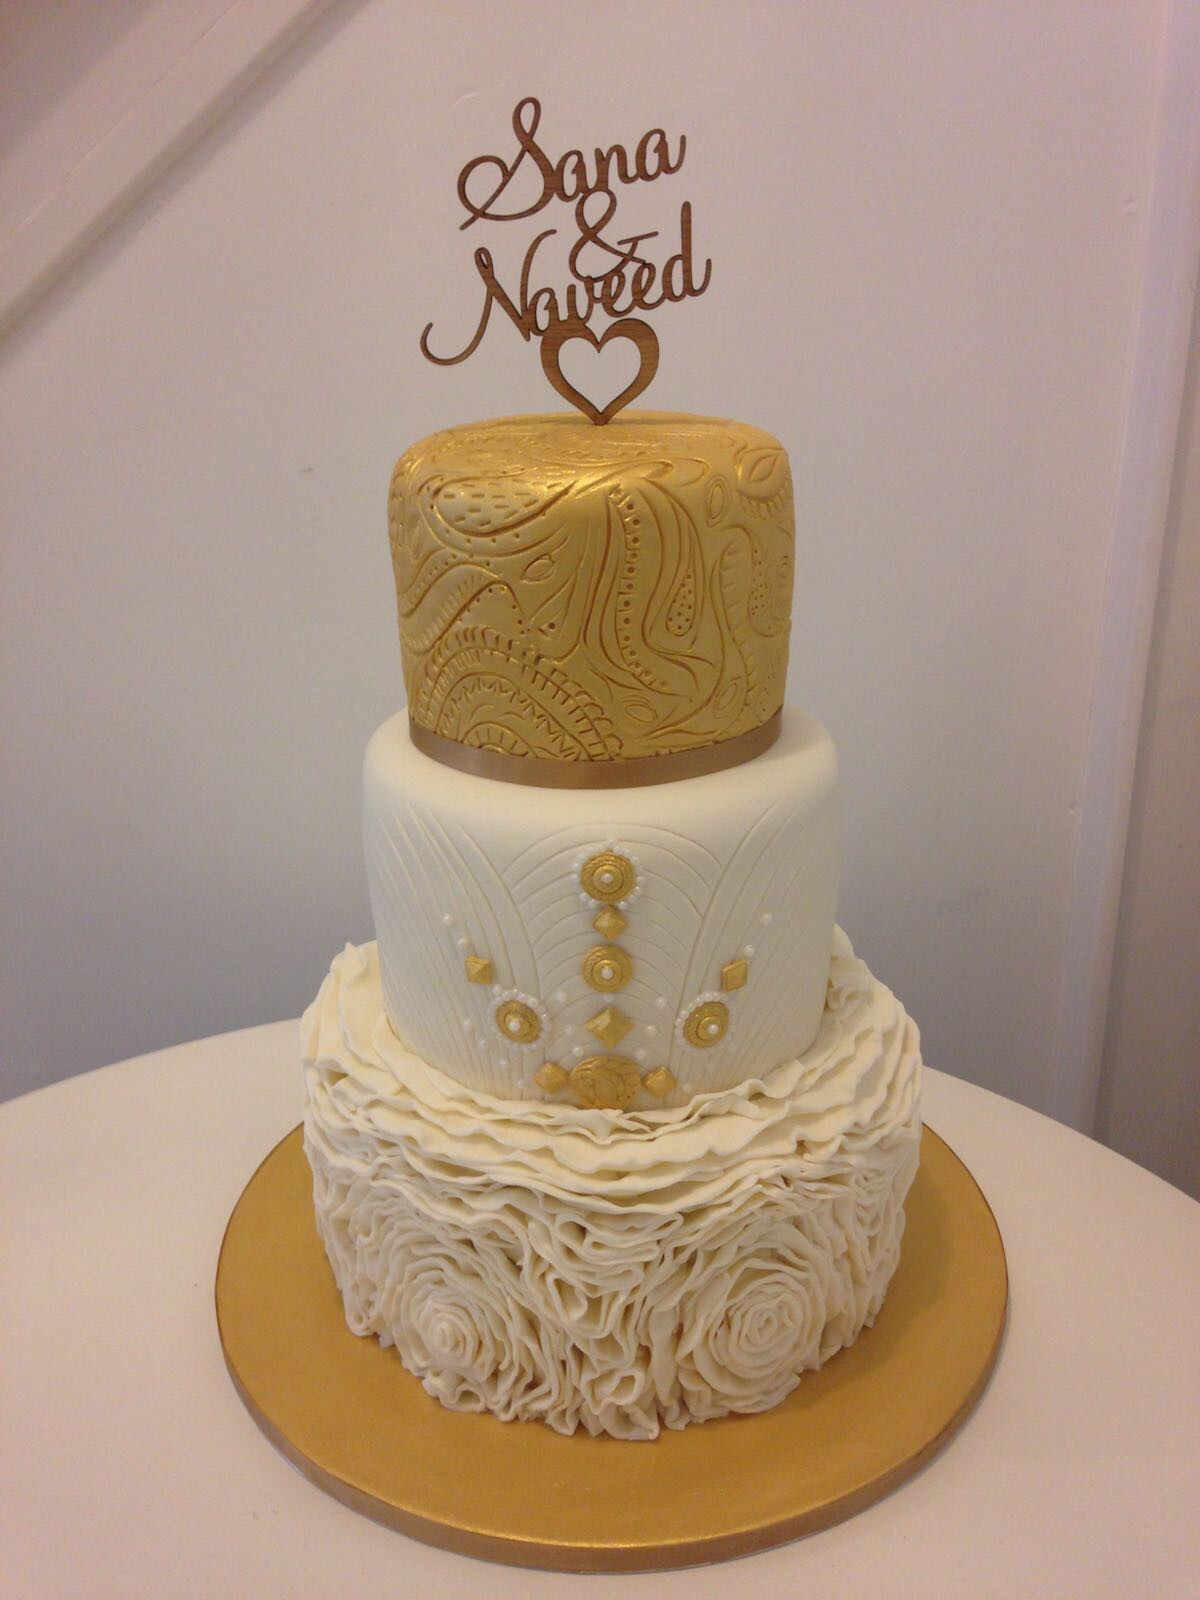 Designer Cakes By Paige Glasgow